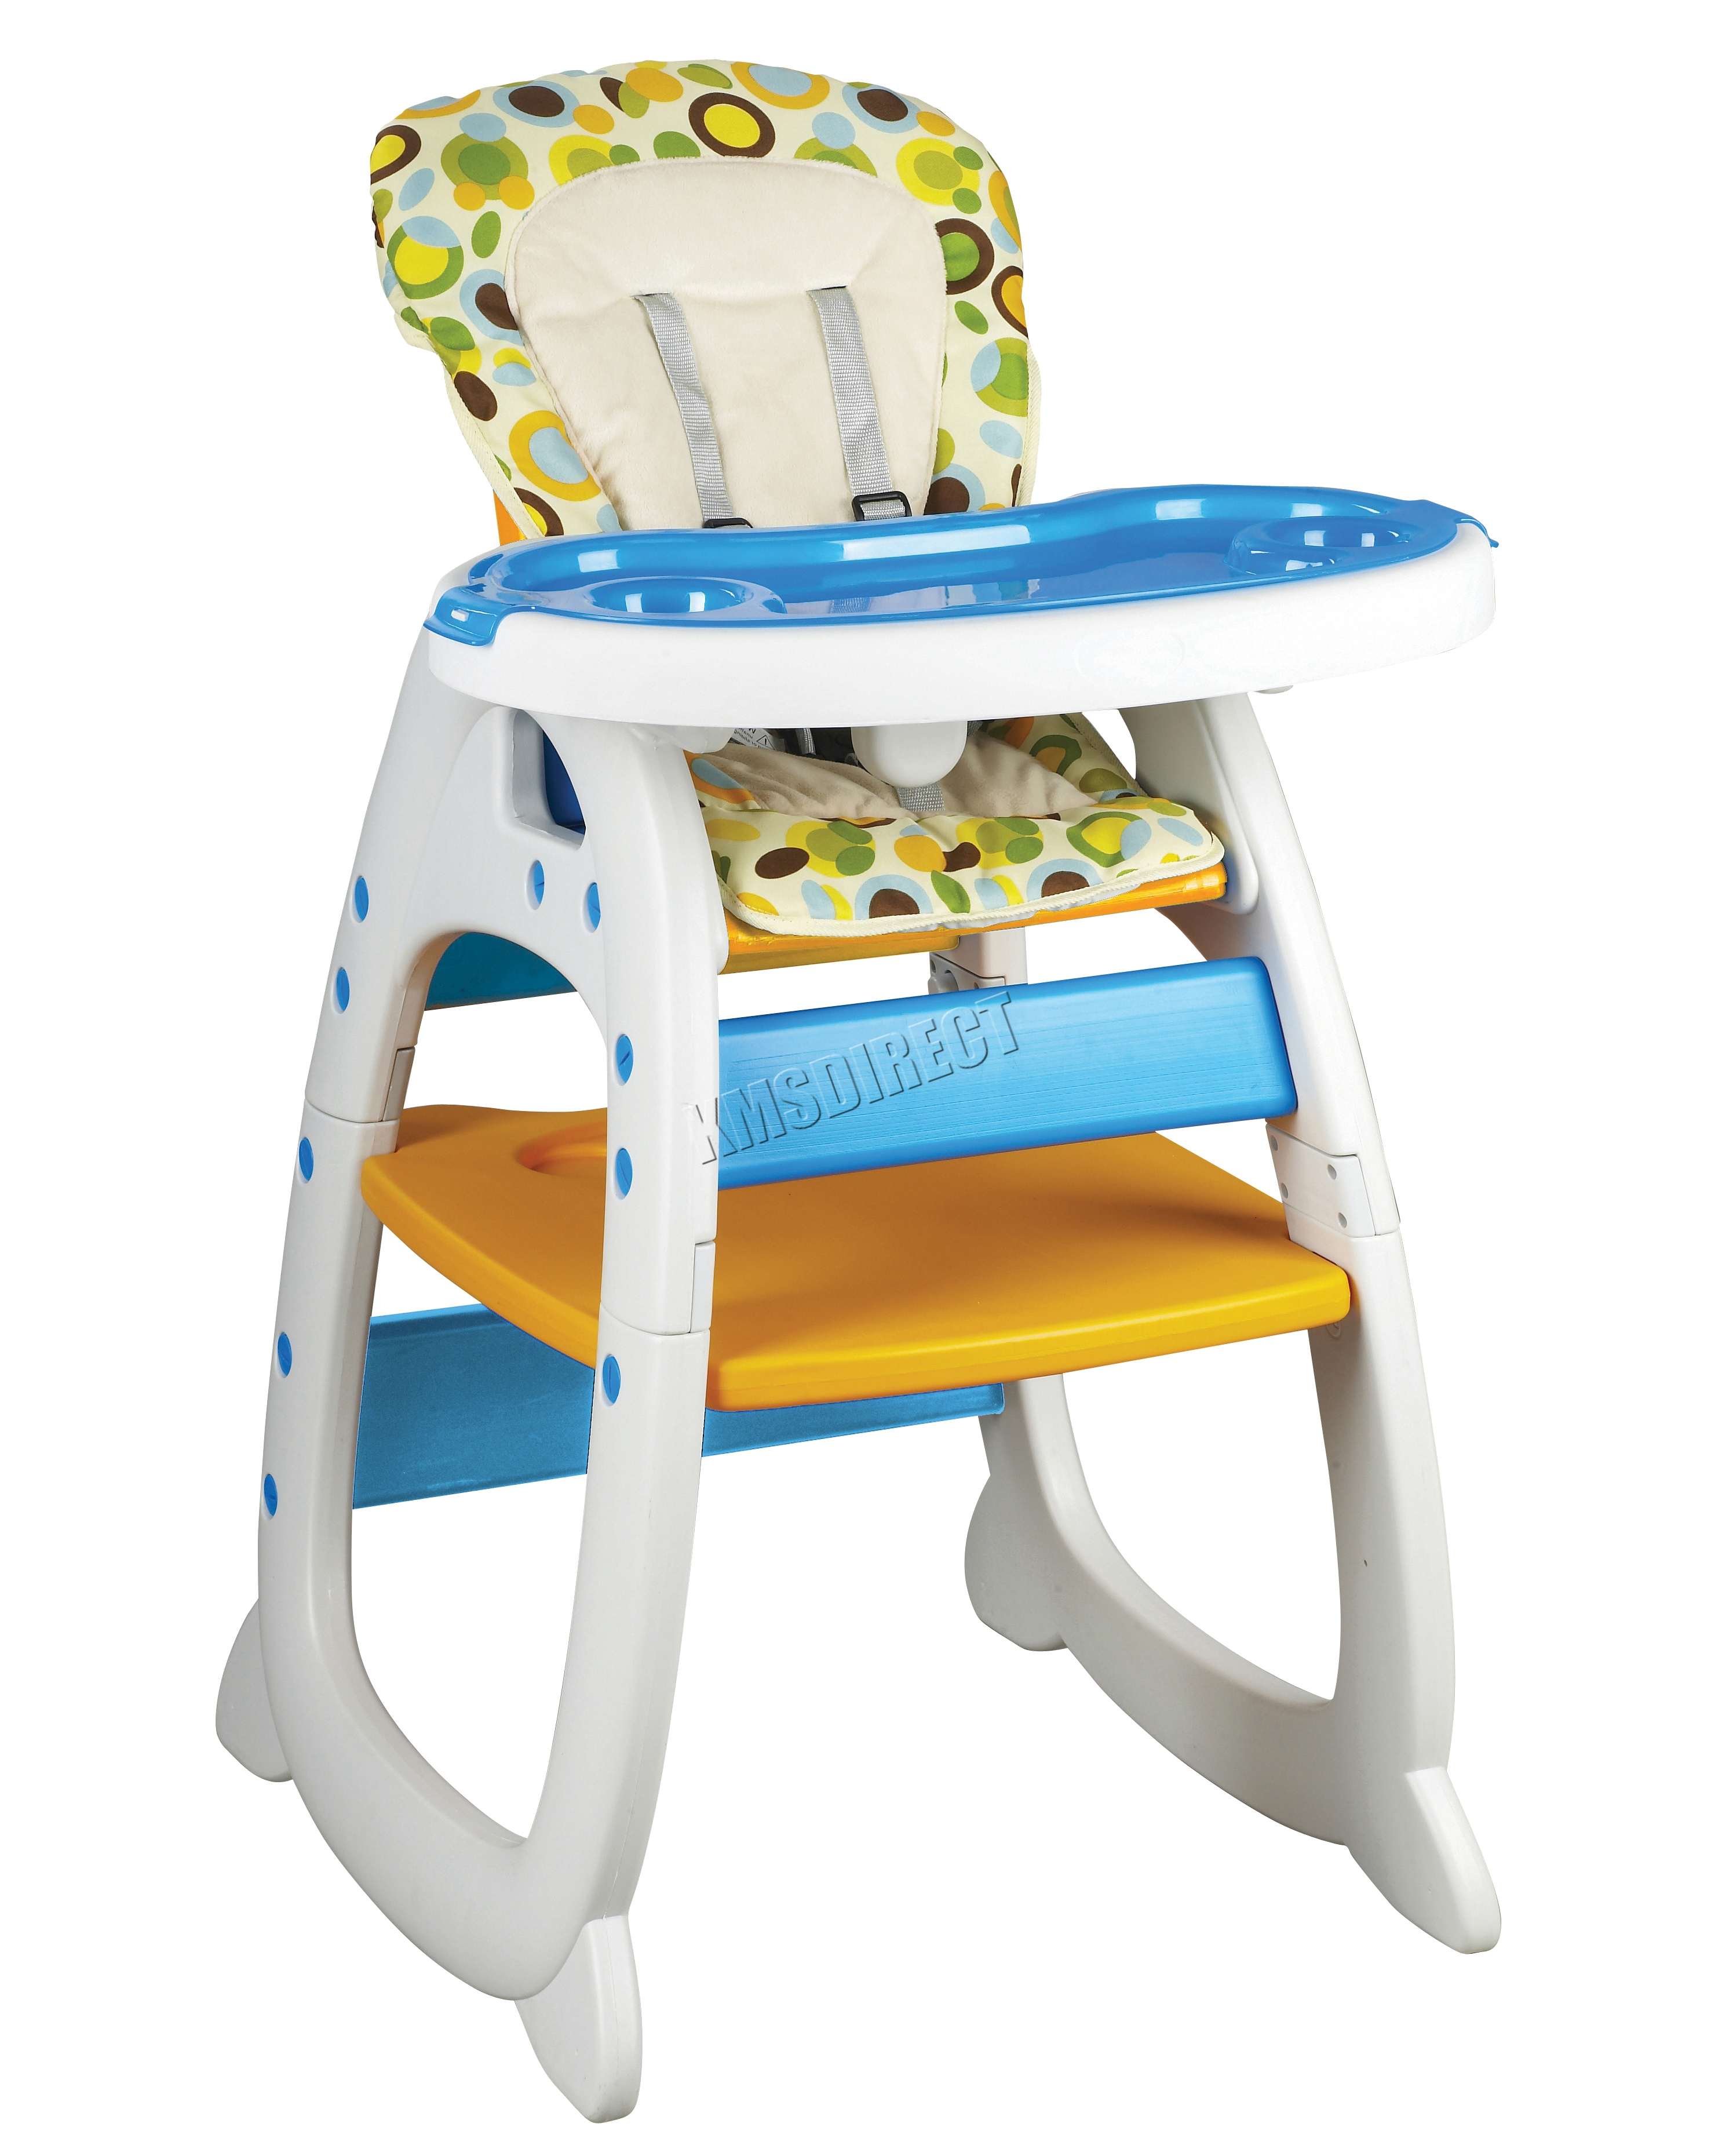 Infant Feeding Table - Best Table 2017